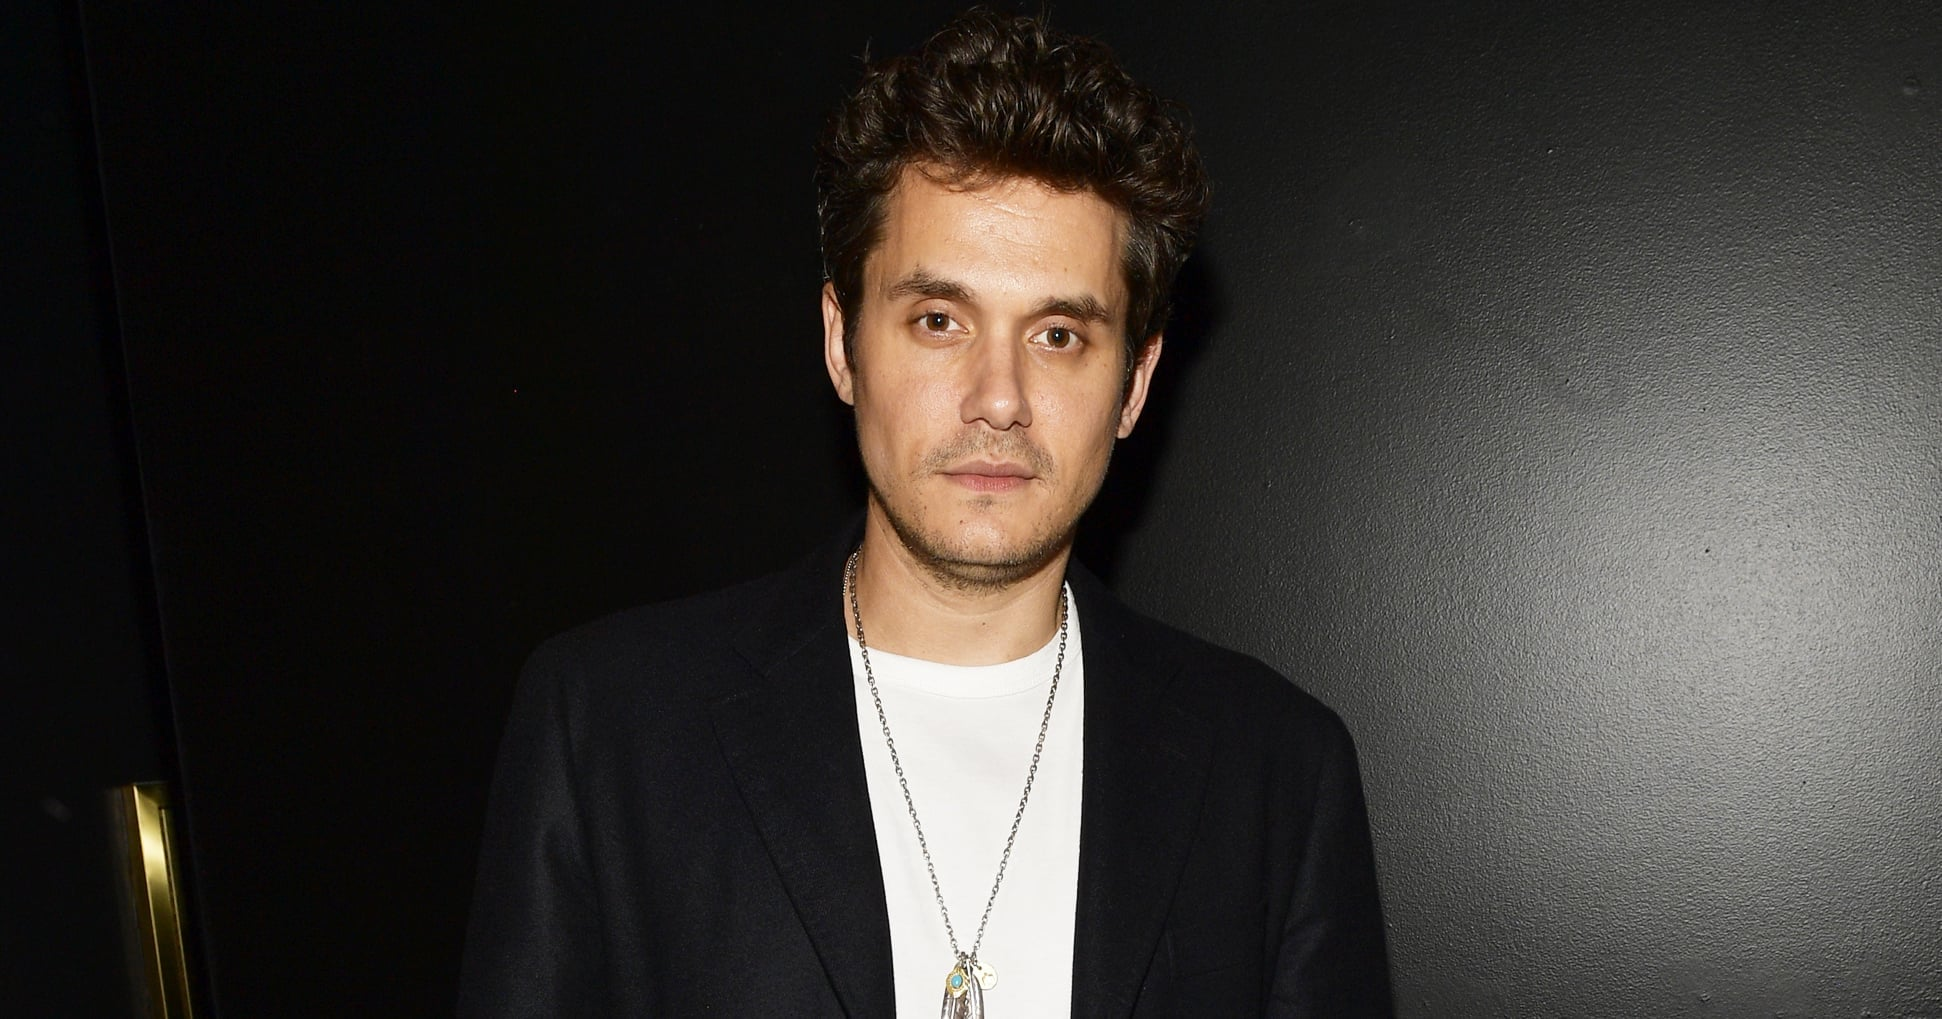 John Mayer Pokes Fun at the Instagram Privacy Hoax